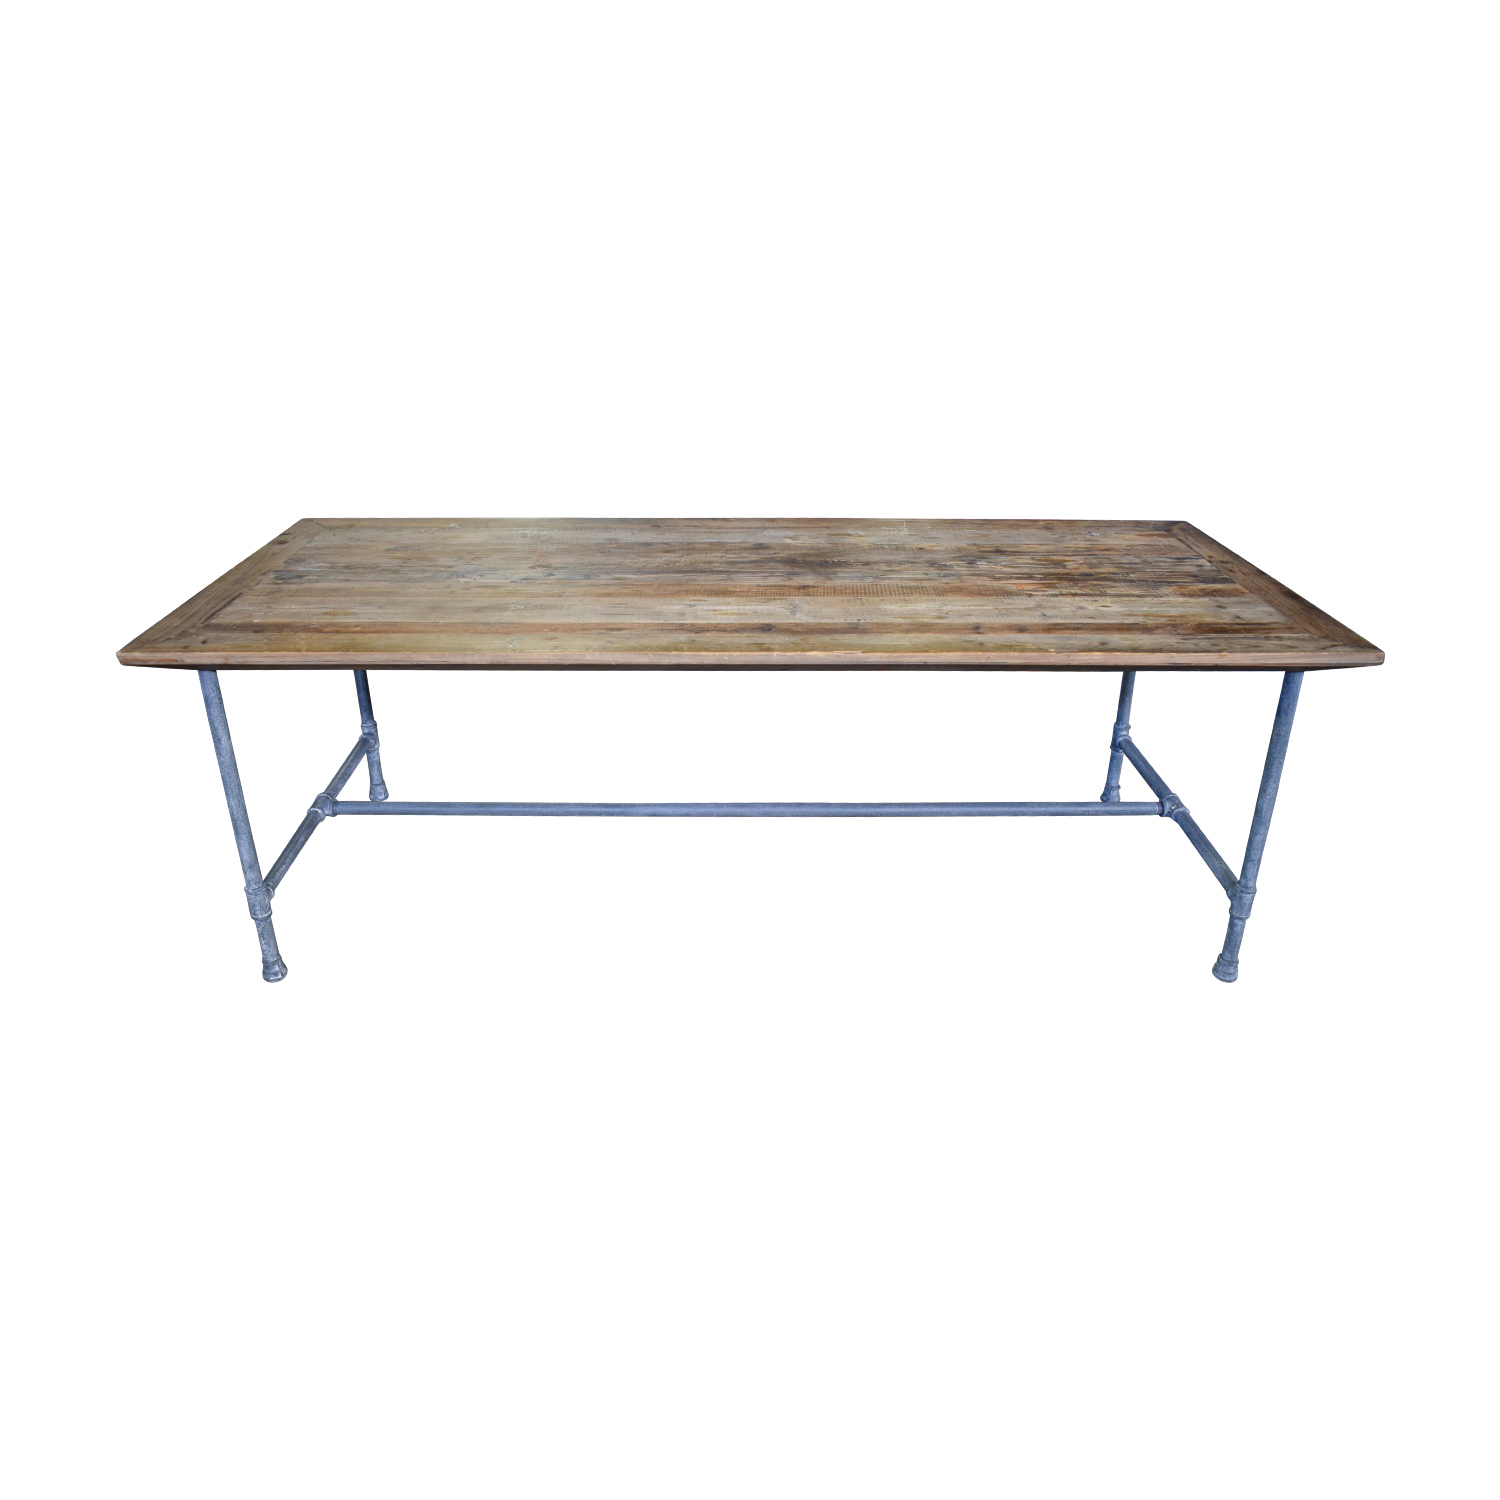 ABC Carpet & Home Rustic Wood Dining Table sale